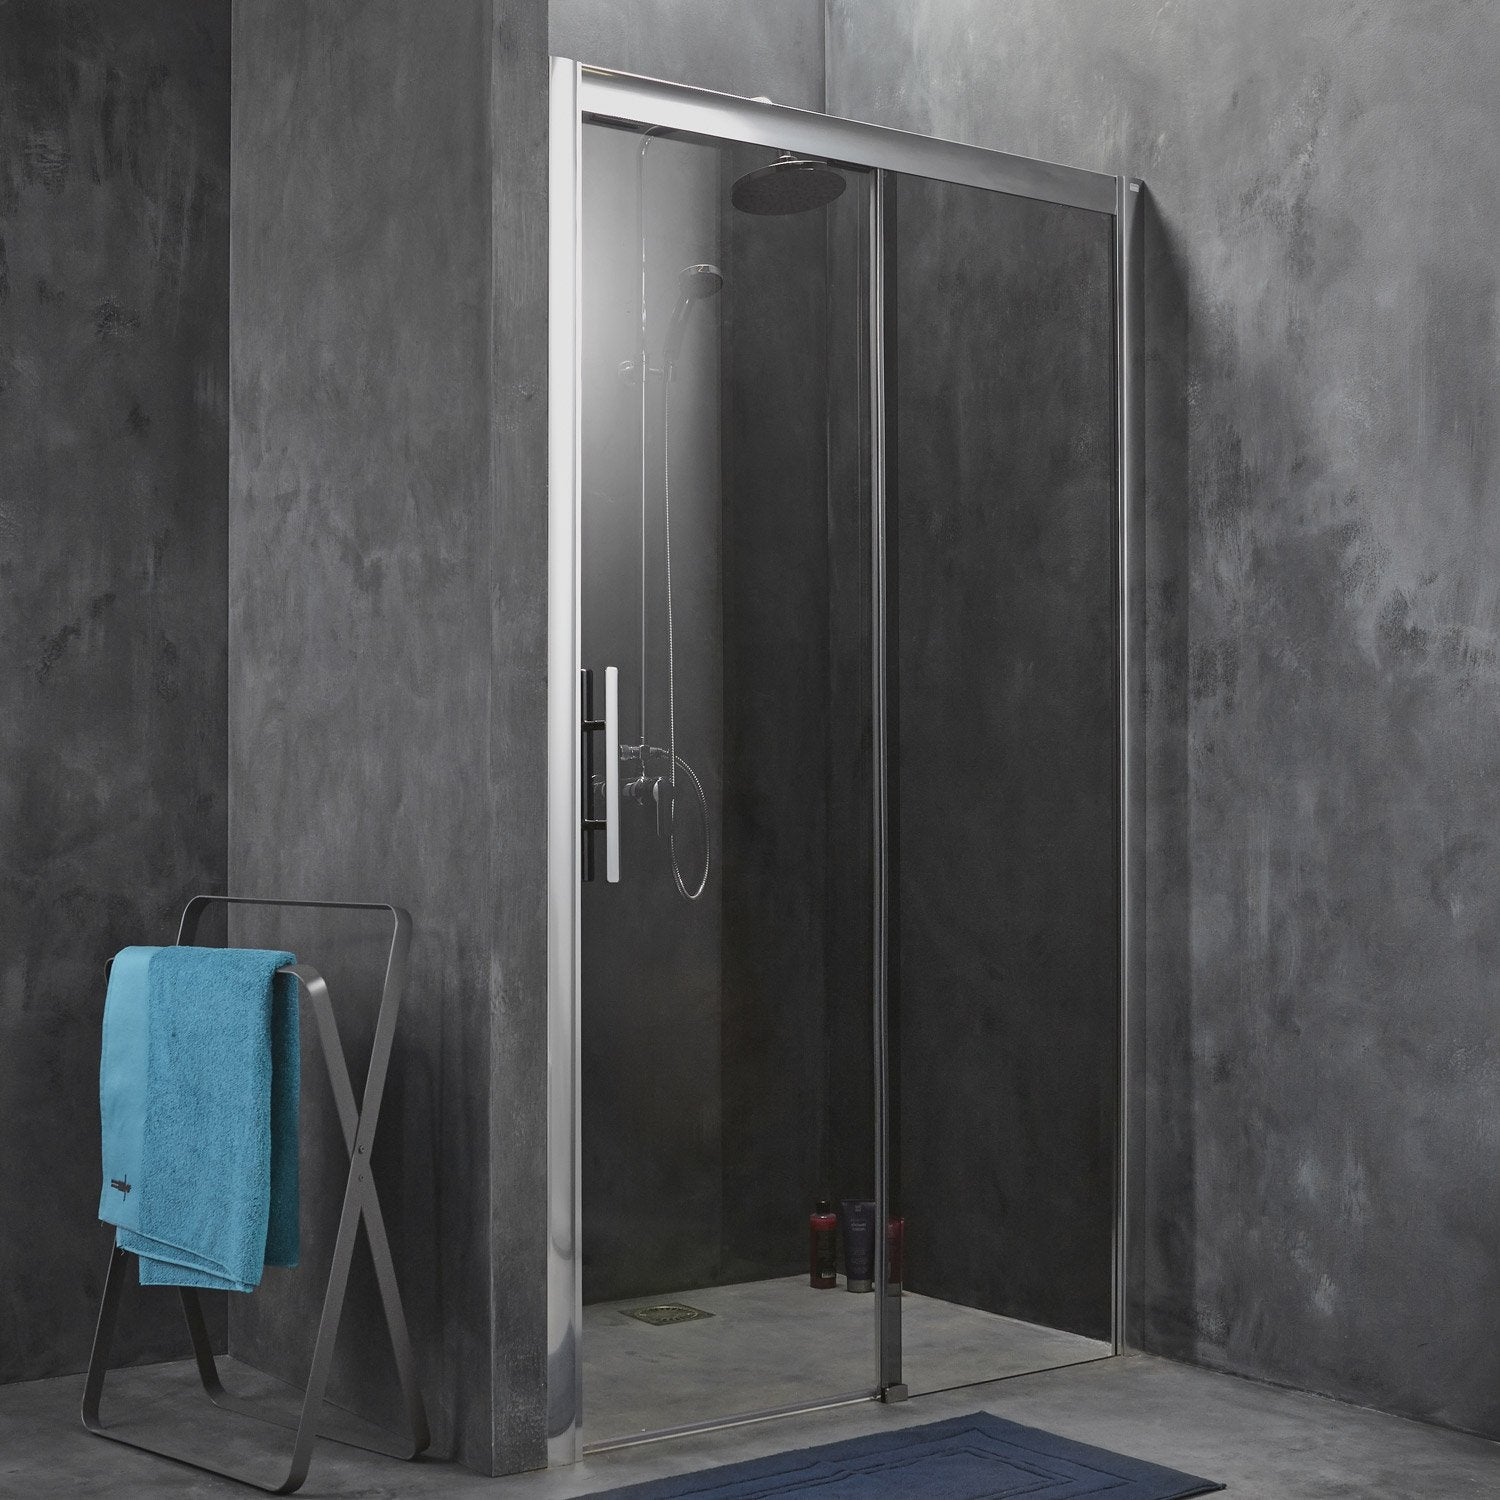 Porte de douche coulissante 147 151 cm profil chrom for Leroy merlin porte douche